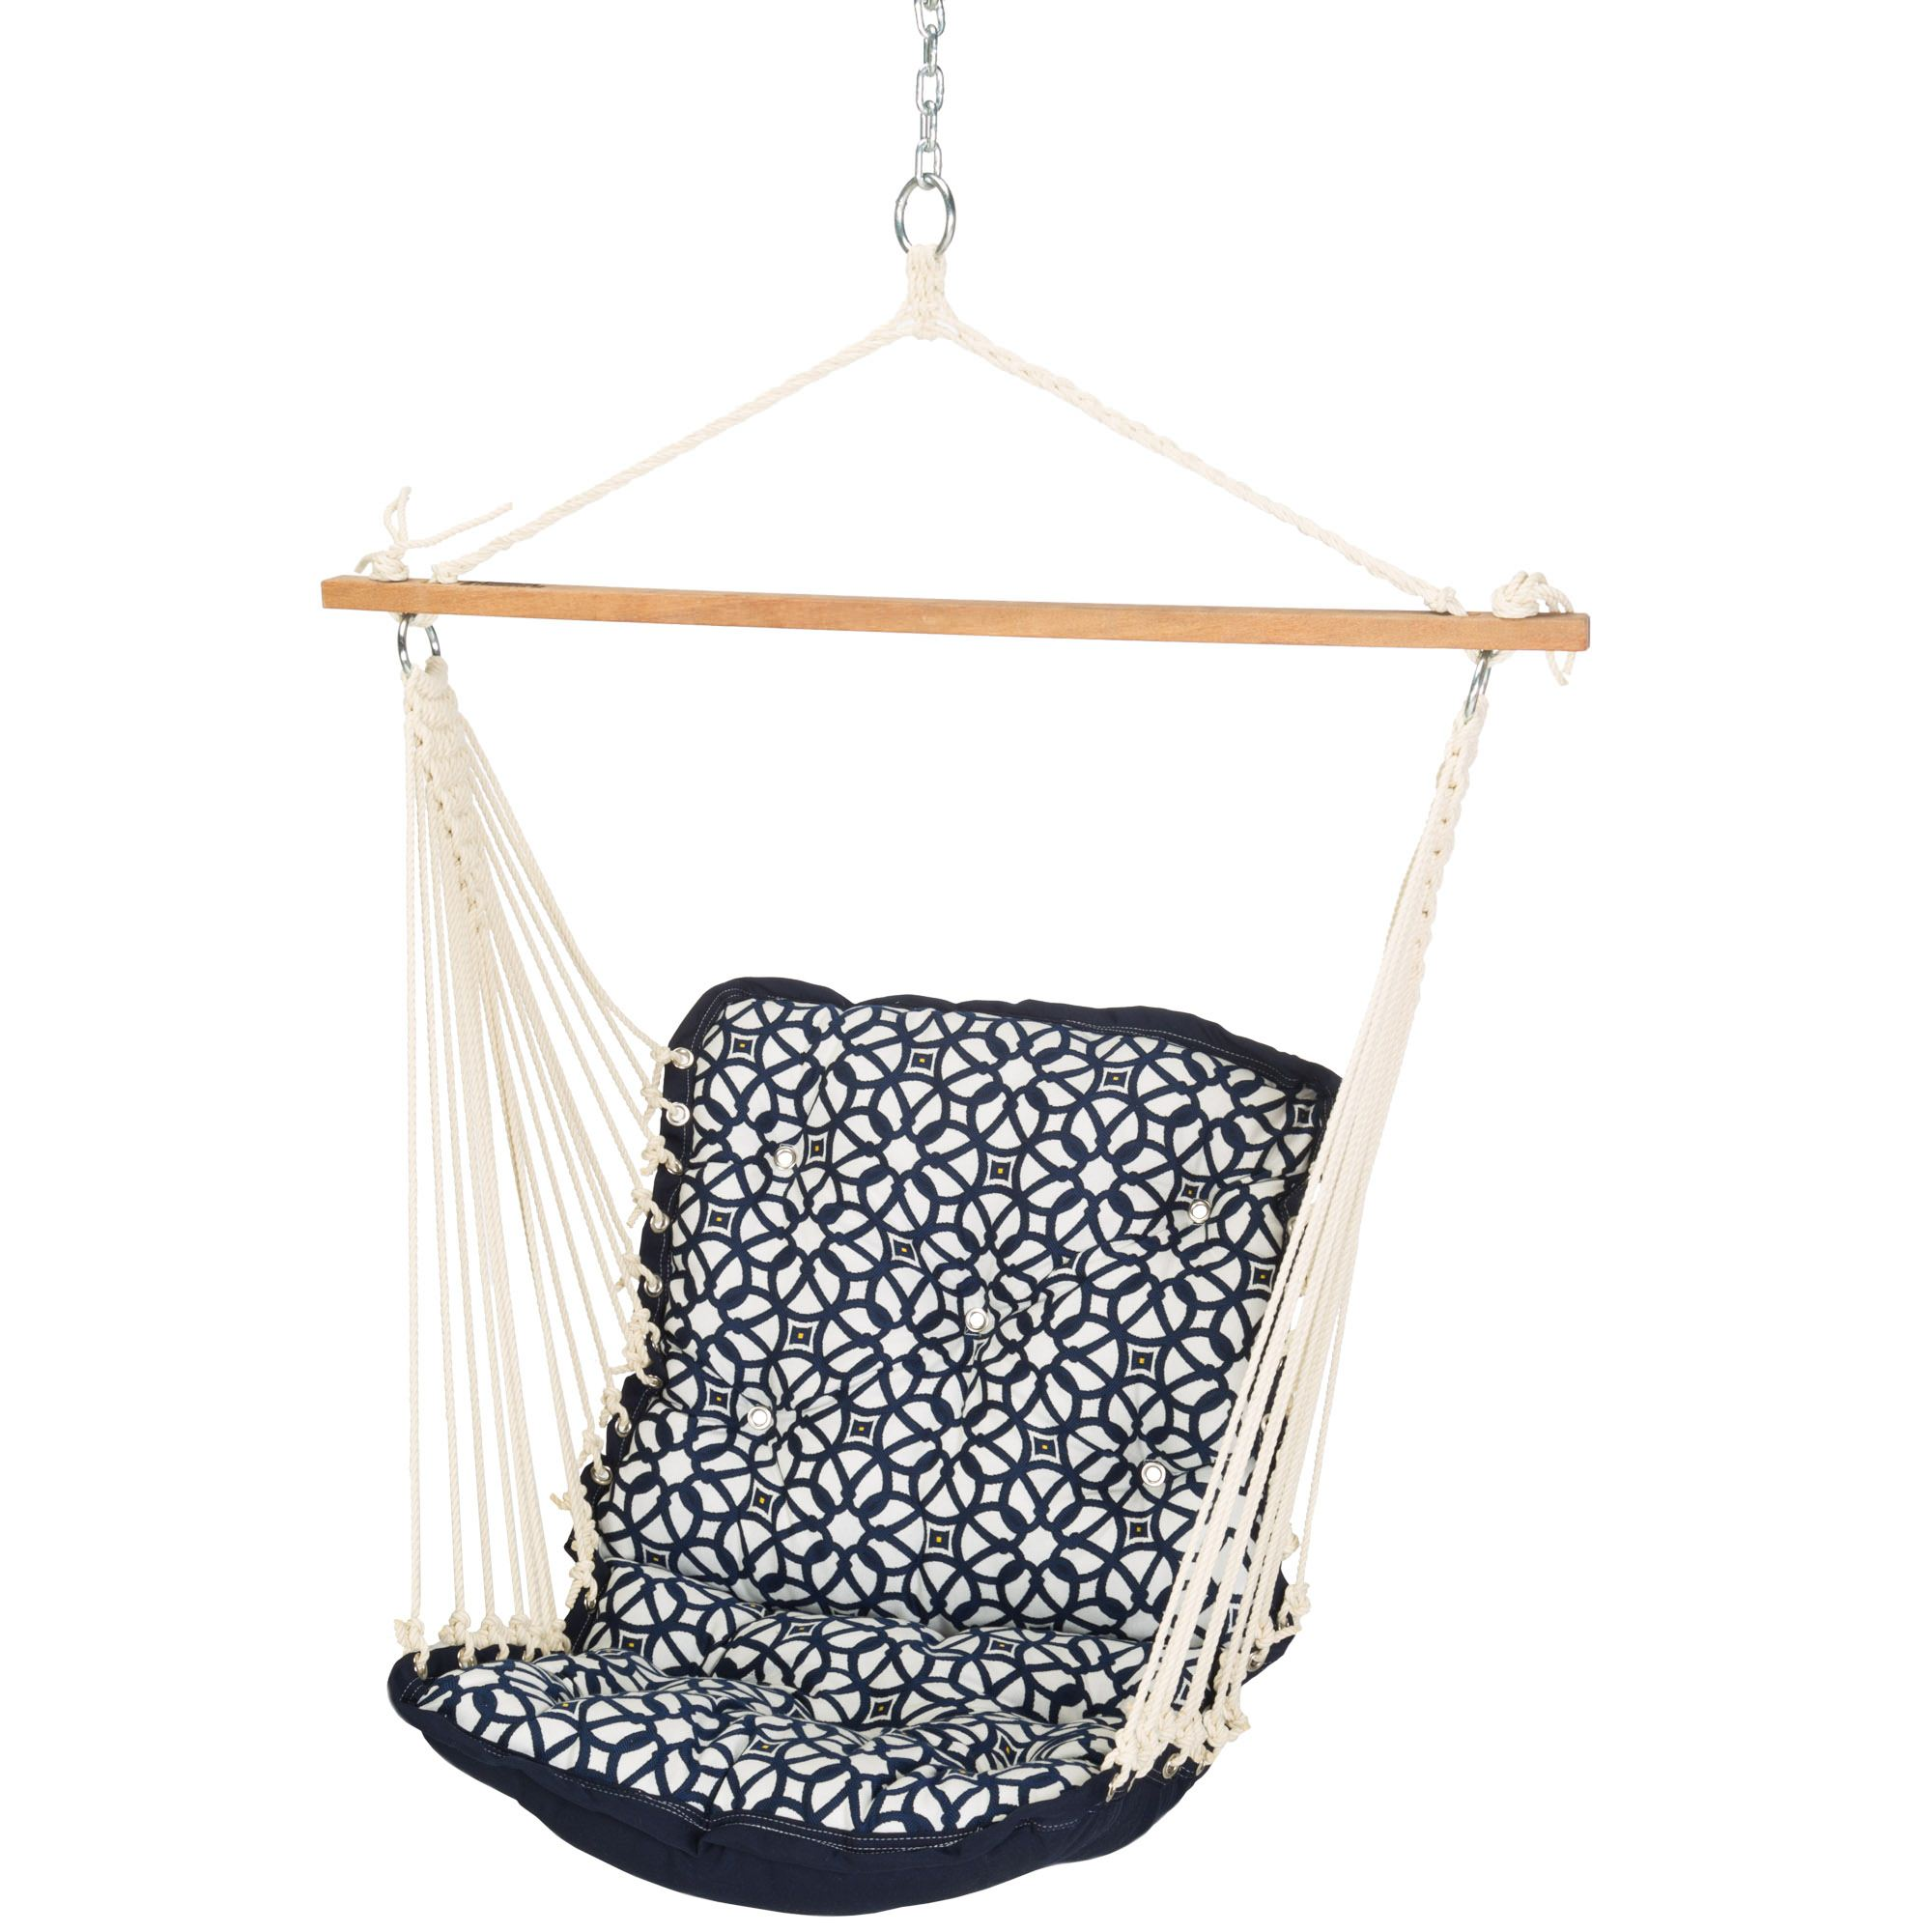 Tufted Single Swing Made with Sunbrella - Luxe Indigo by Hatteras Hammocks